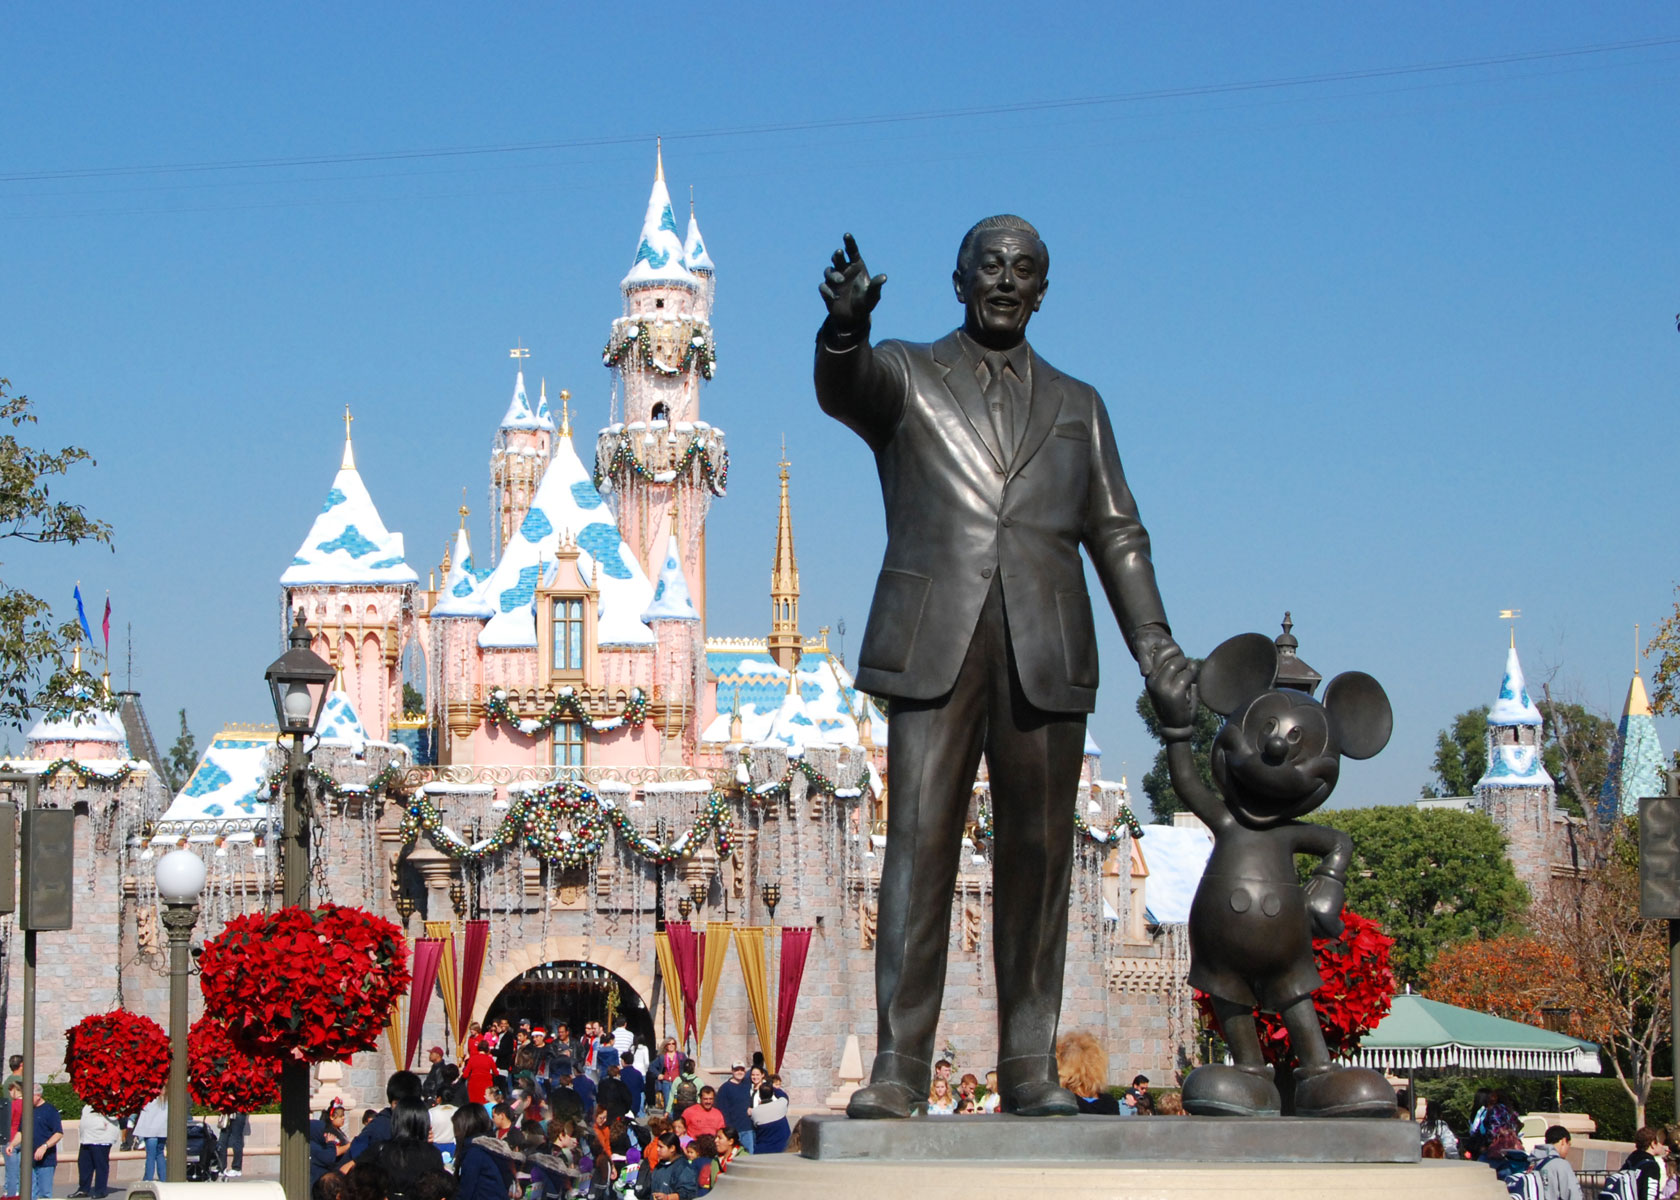 The happiest place on earth gets even happier magical savings are